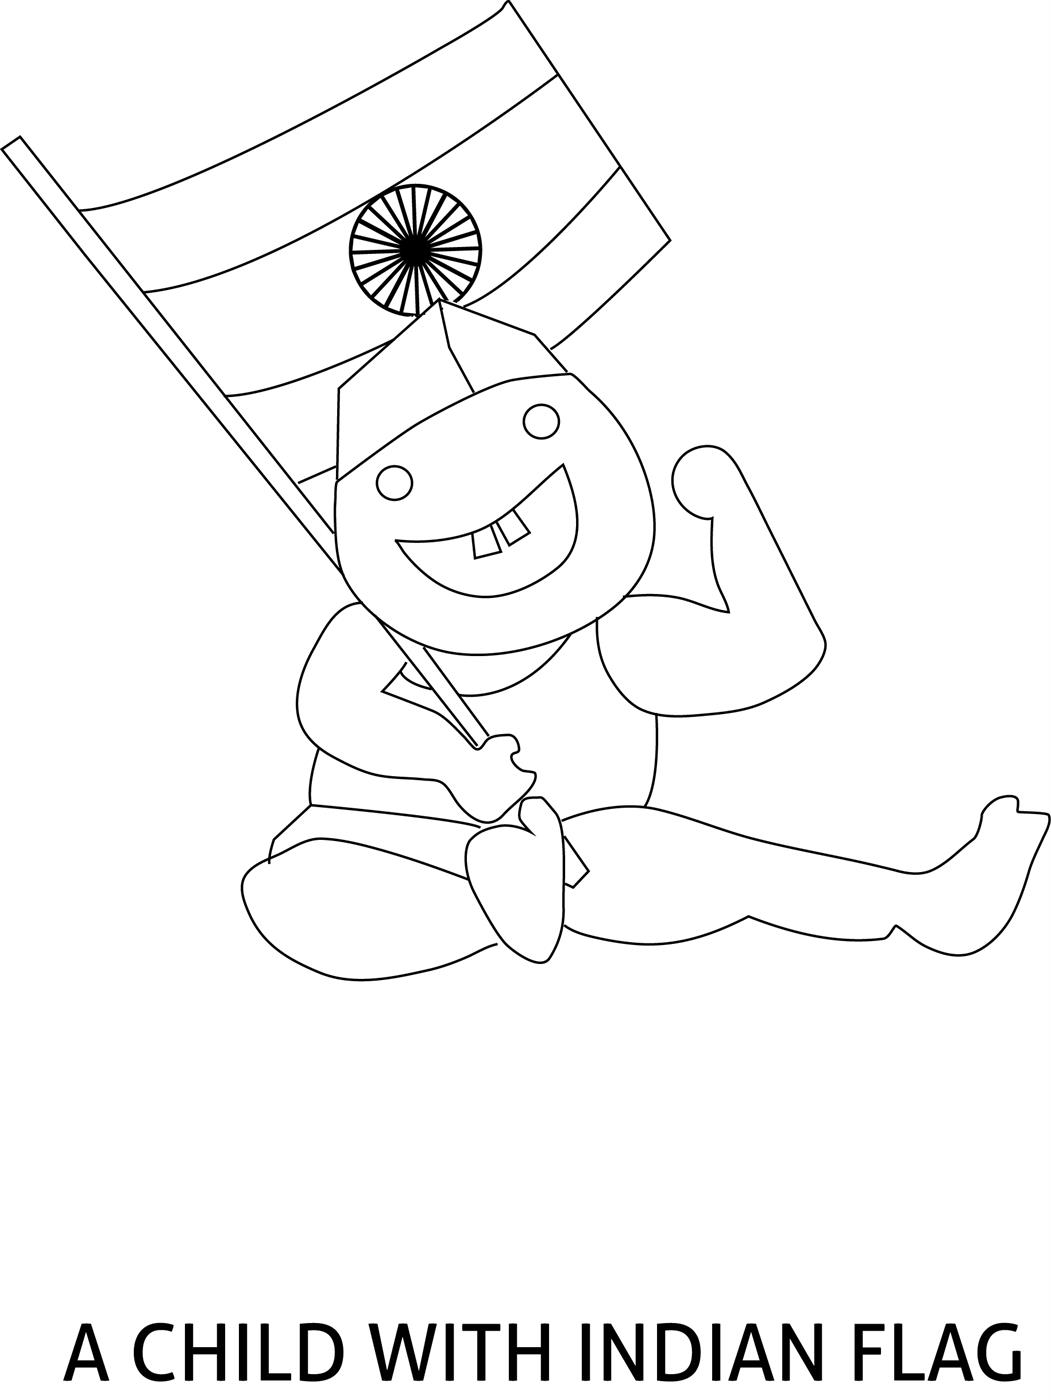 Republic Day Of India Coloring Page